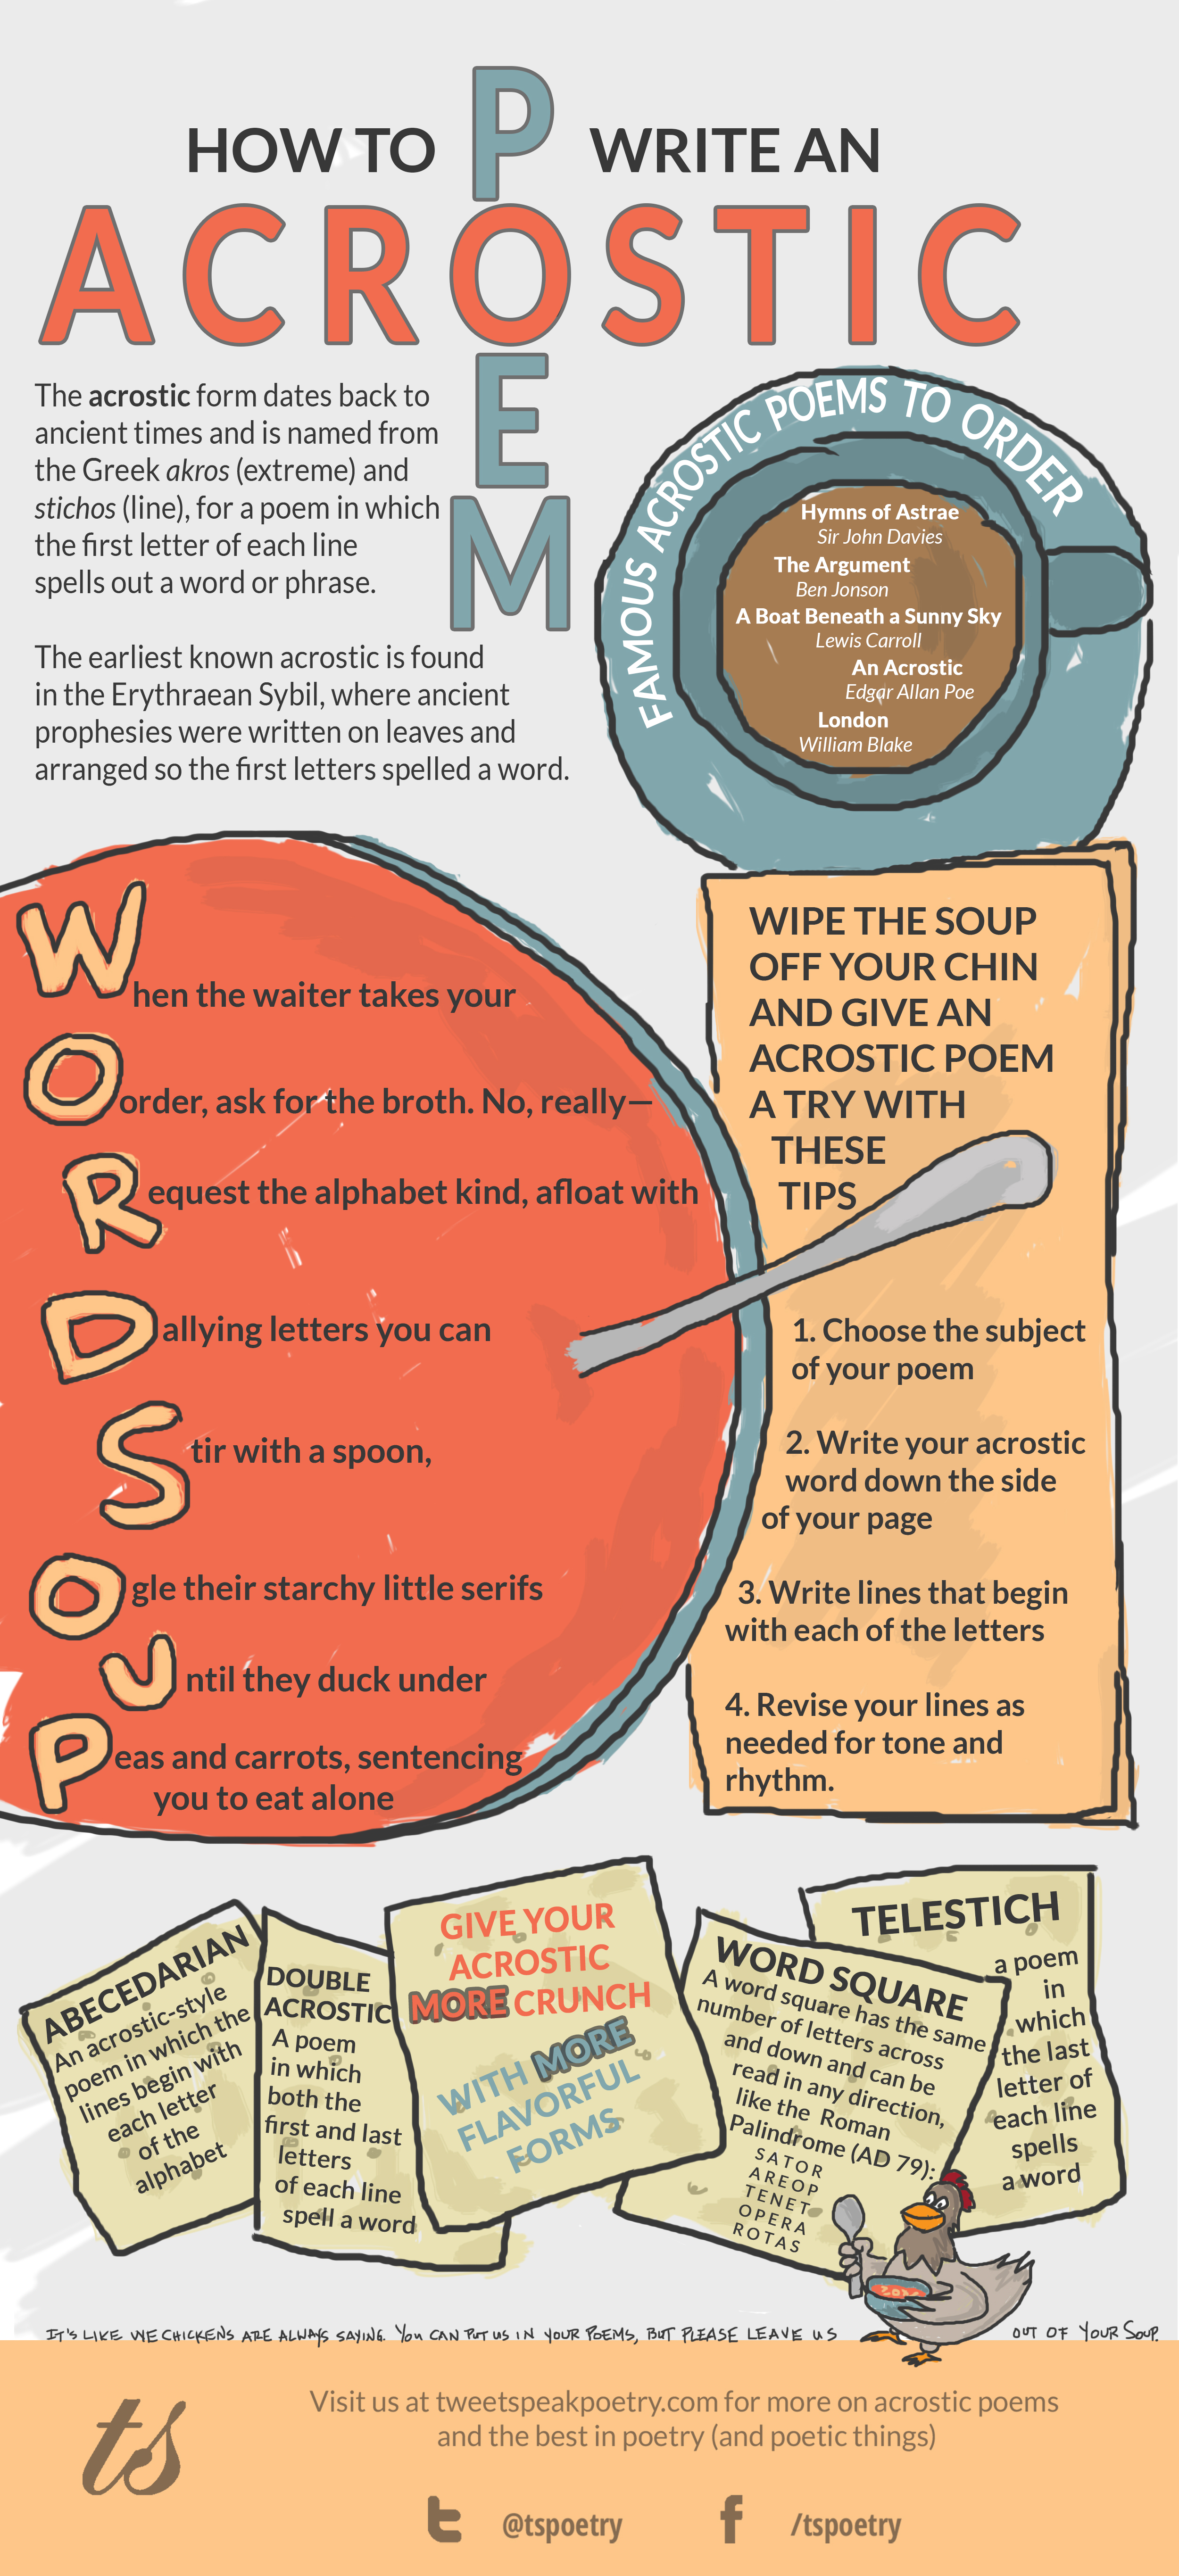 How To Write An Acrostic Poem Infographic